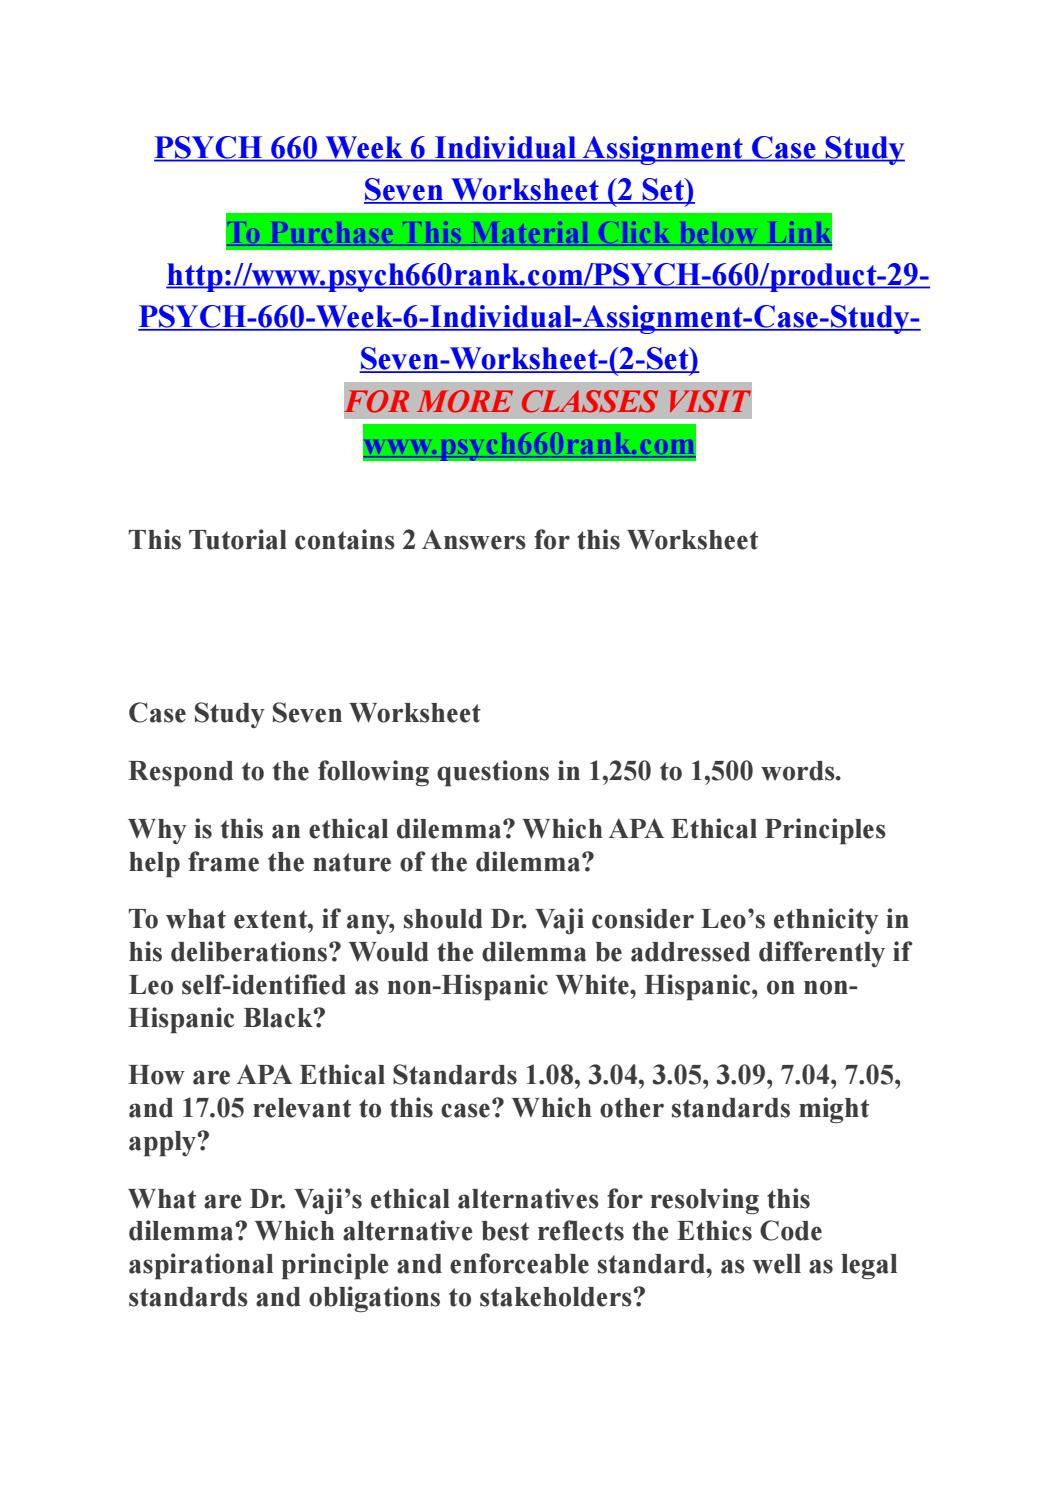 case study seven worksheet psych 660